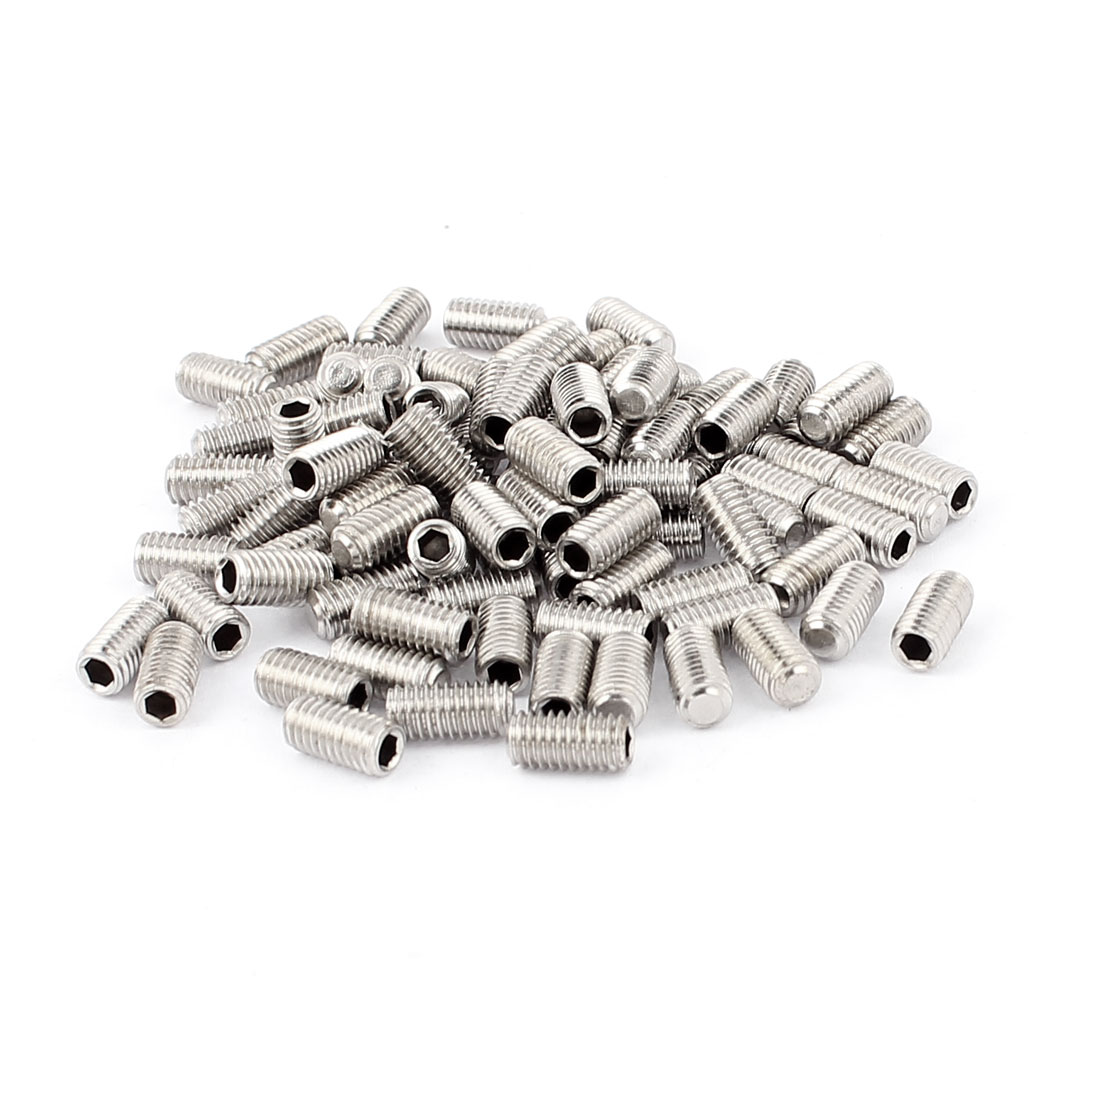 100pcs M5x10mm Hex Socket Flat Point Grub Screws Nut Washer